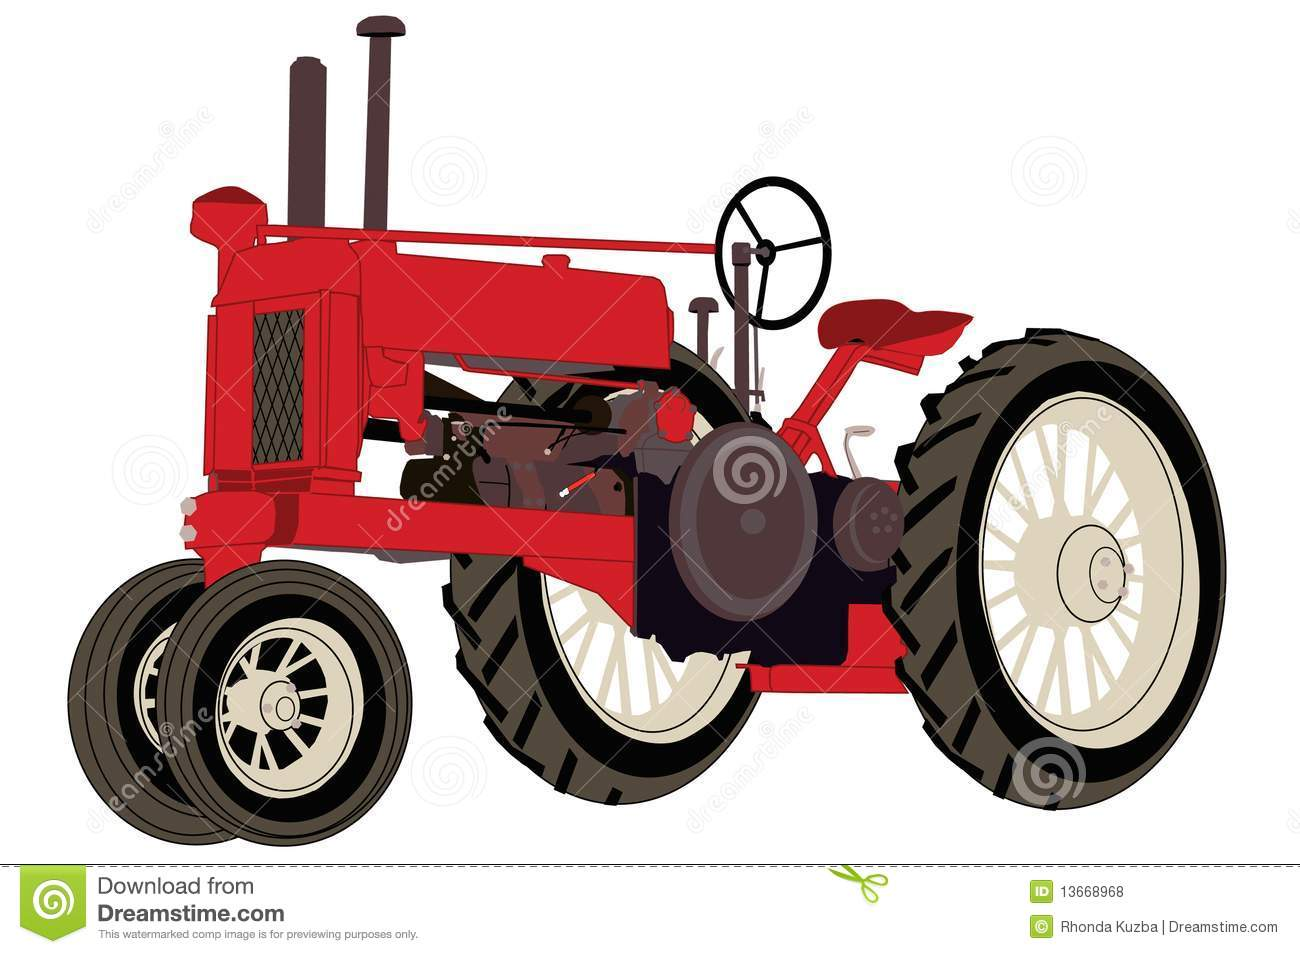 Antique Farm Tractor Royalty Free Stock Photos   Image  13668968